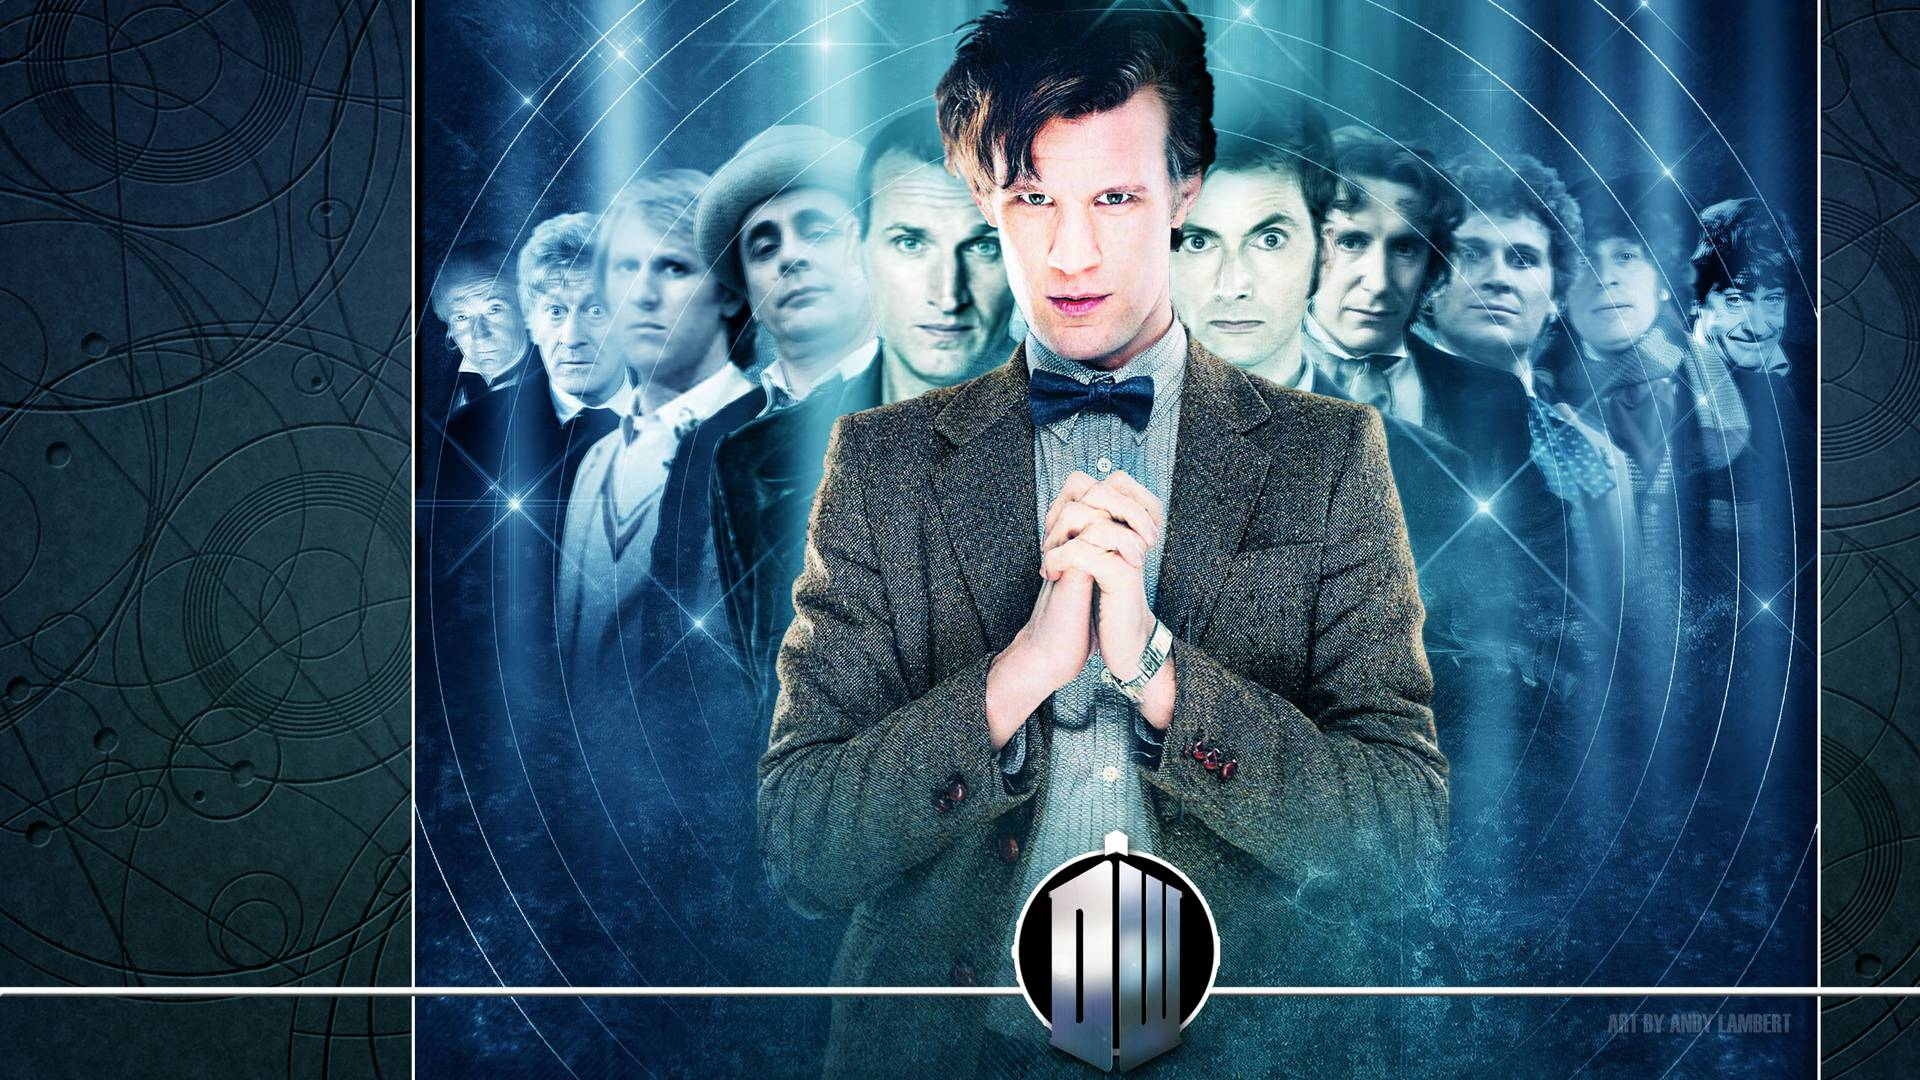 11th doctor wallpapers wallpaper cave